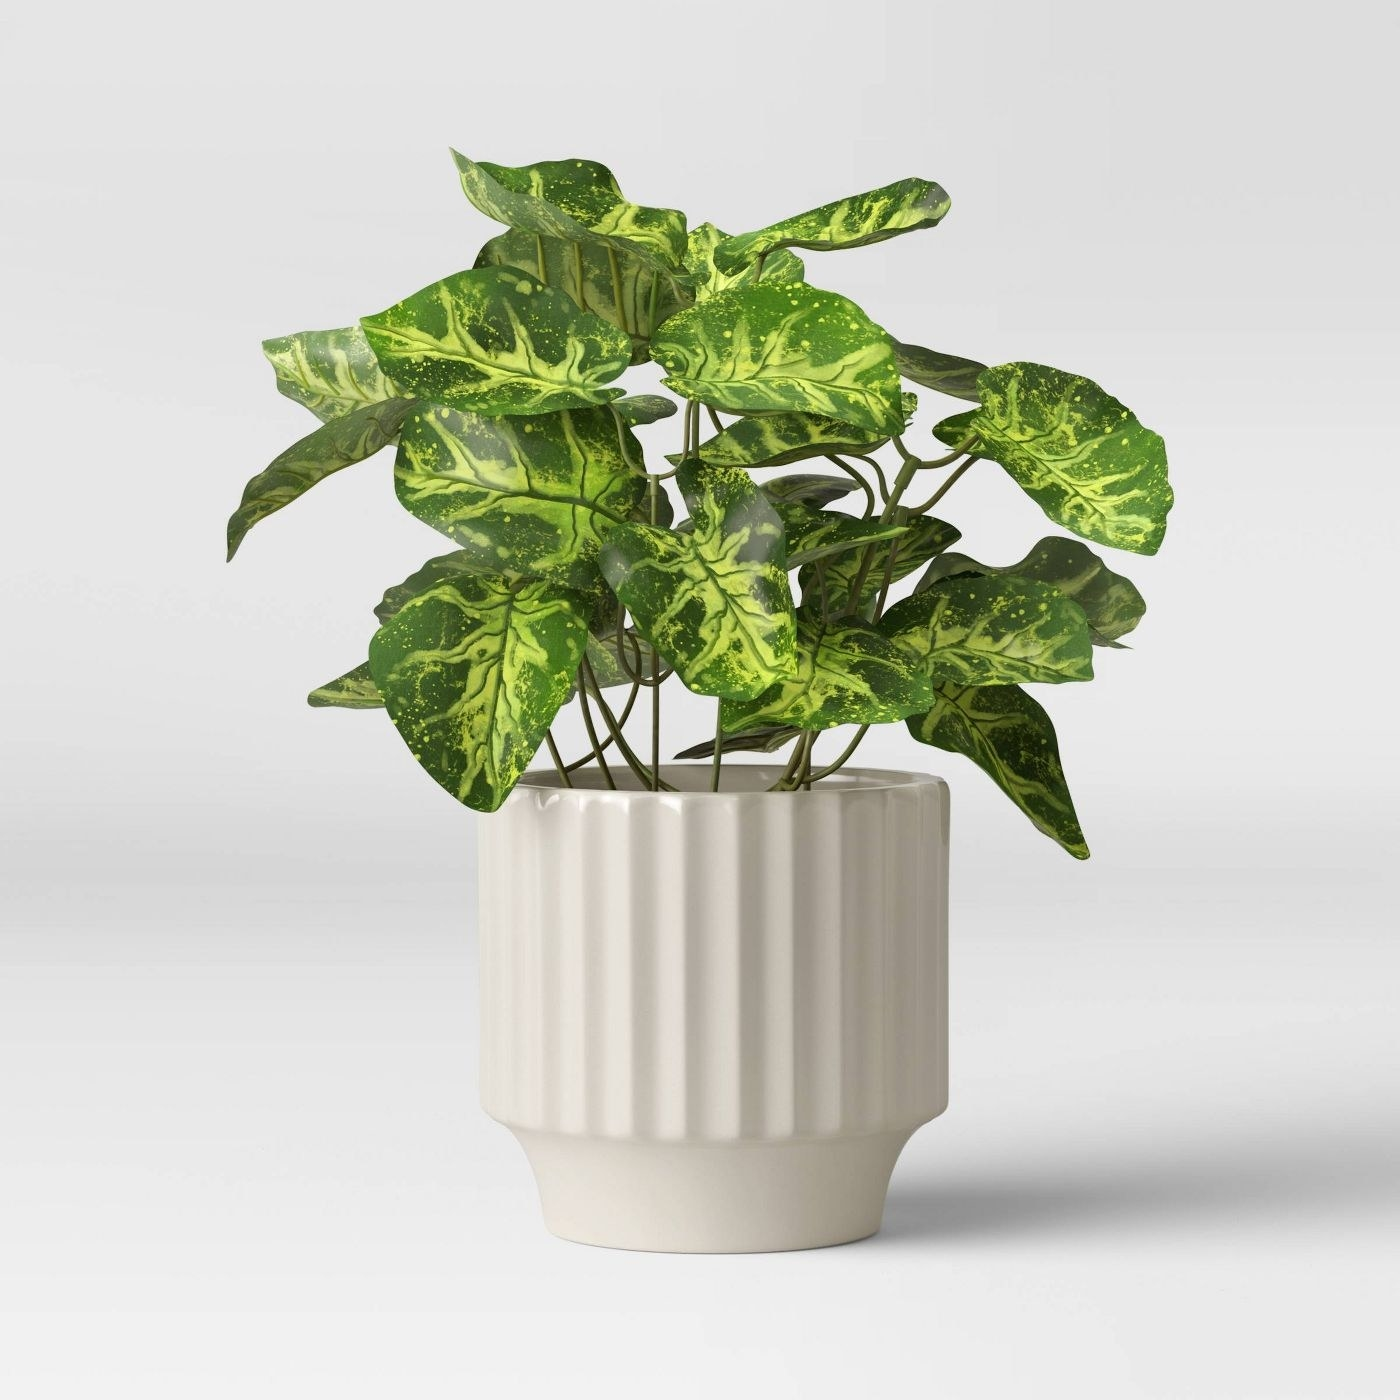 white textured planter with a plant inside